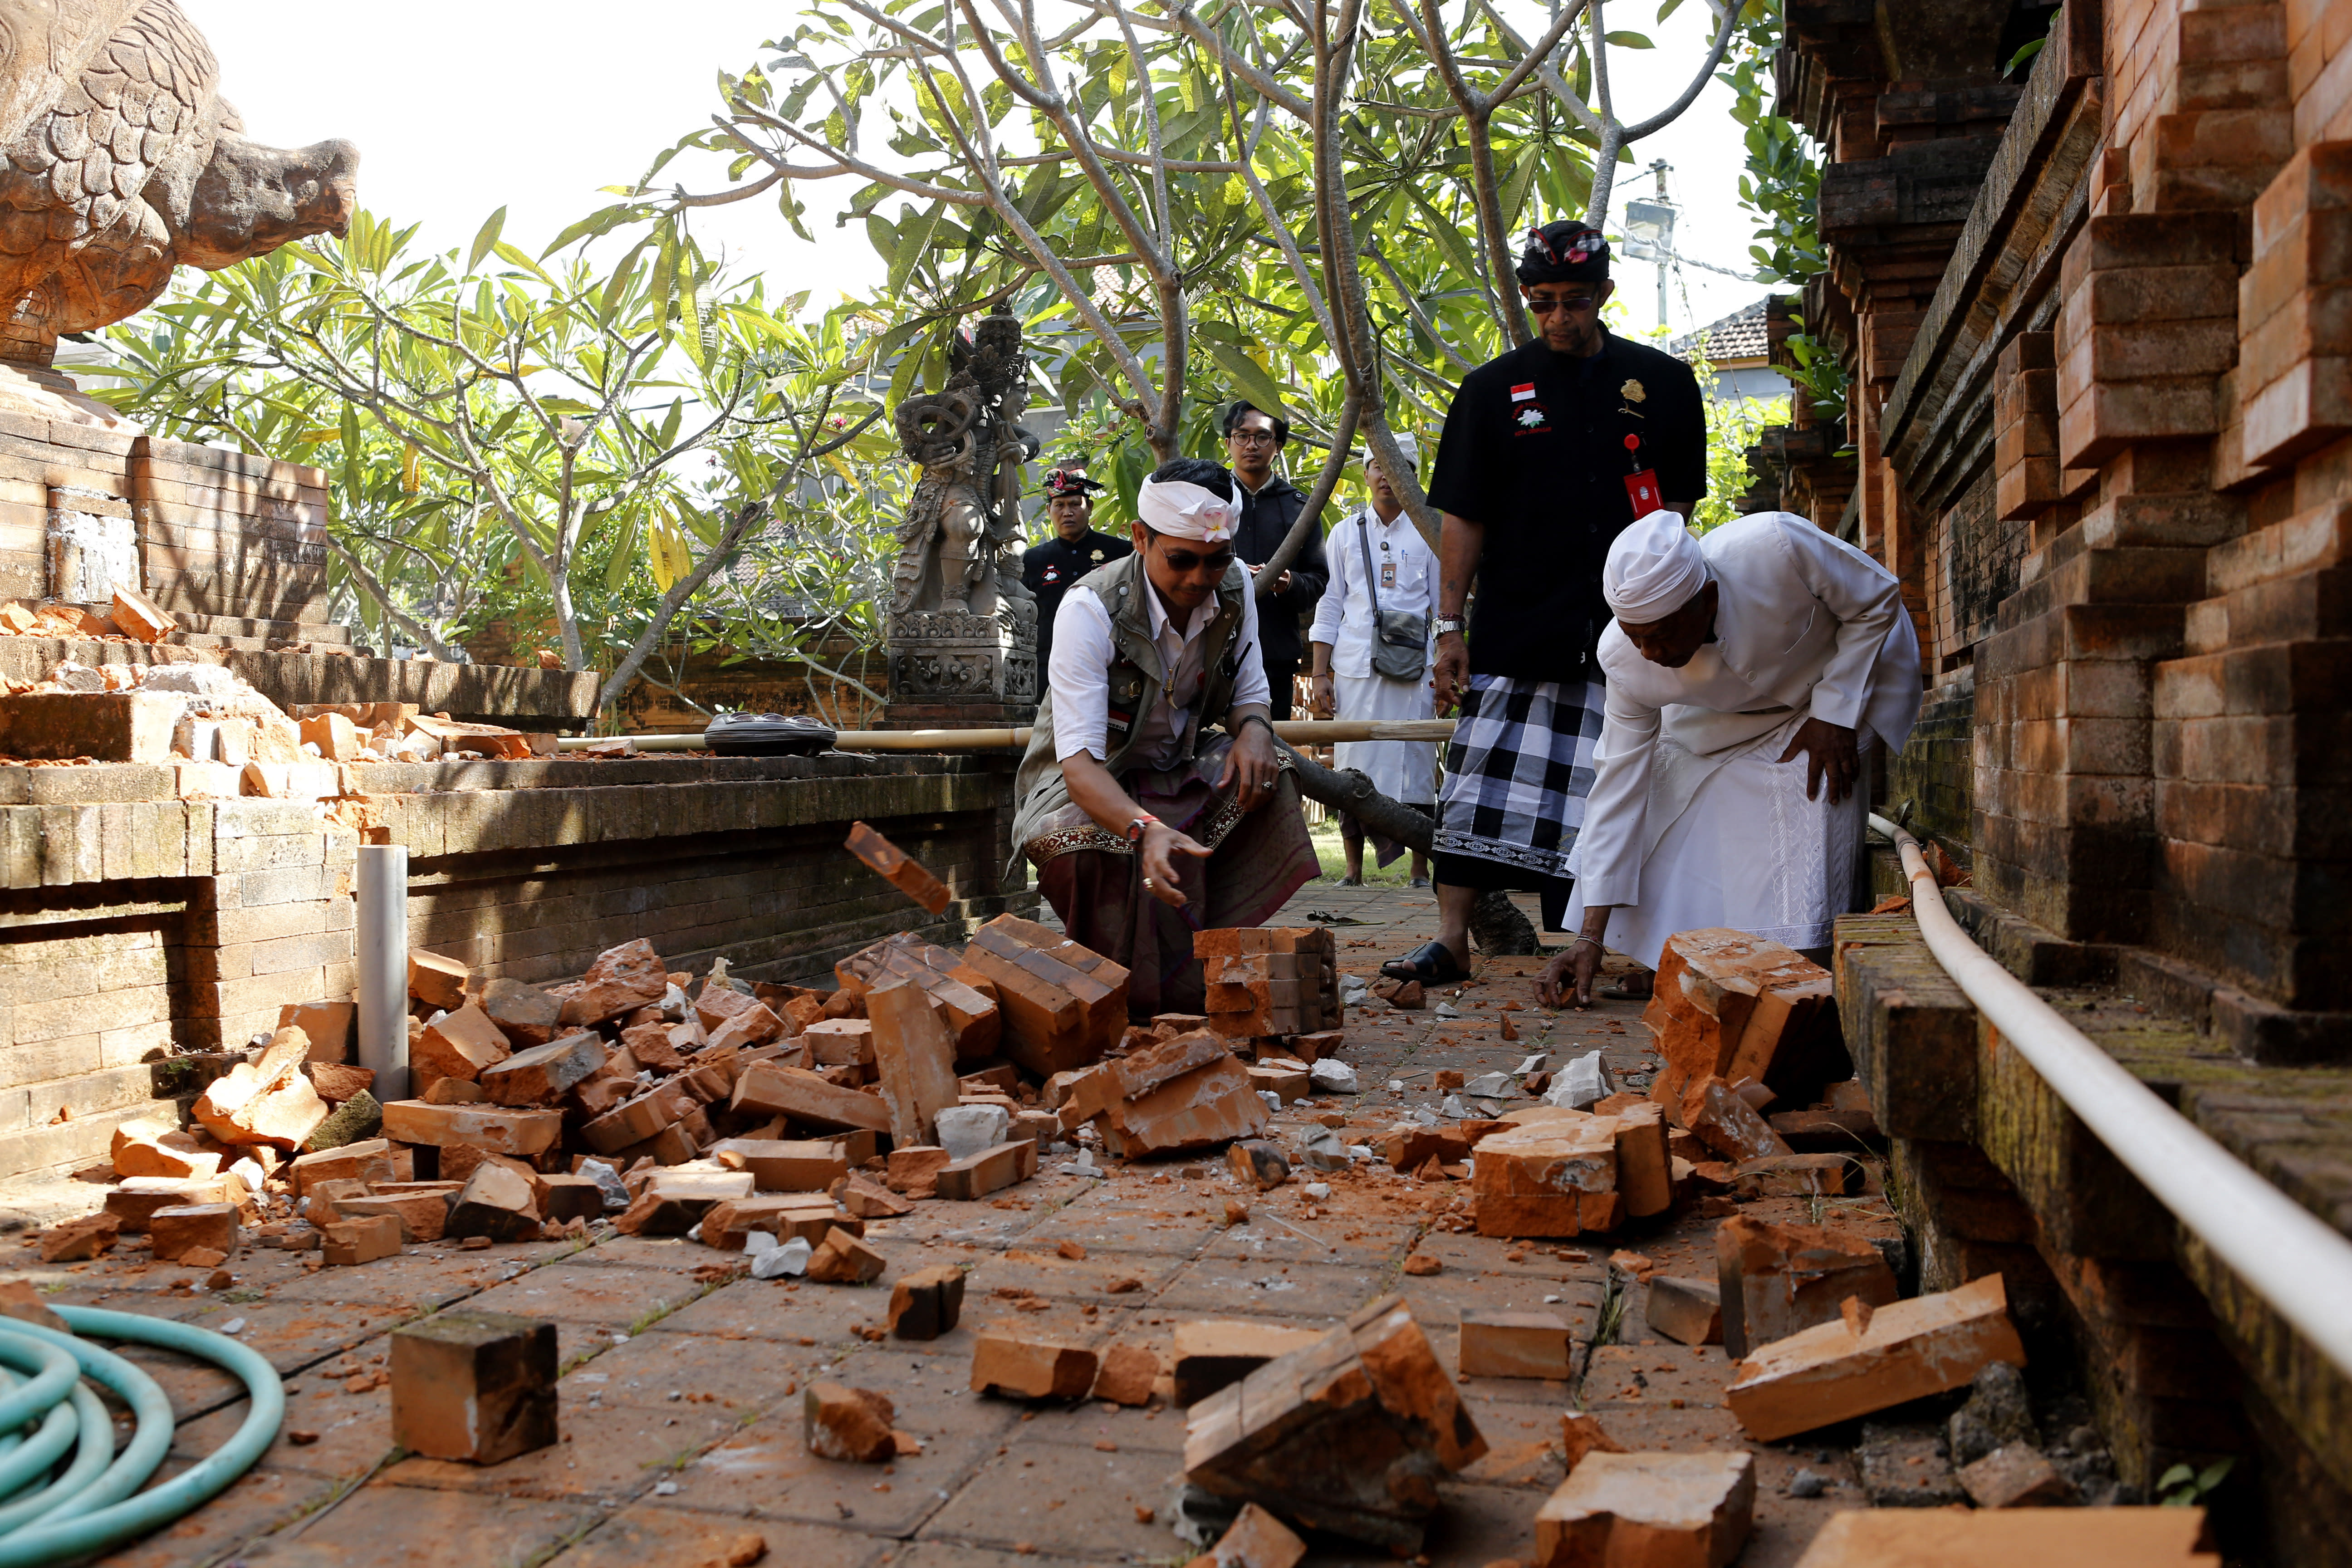 Balinese man collect stones from a damaged temple in Bali, Indonesia Tuesday, July 16, 2019. Indonesian authorities say a subsea earthquake shook Bali, Lombok and East Java on Tuesday, causing damage to homes and temples. (AP Photo/Firdia Lisnawati)